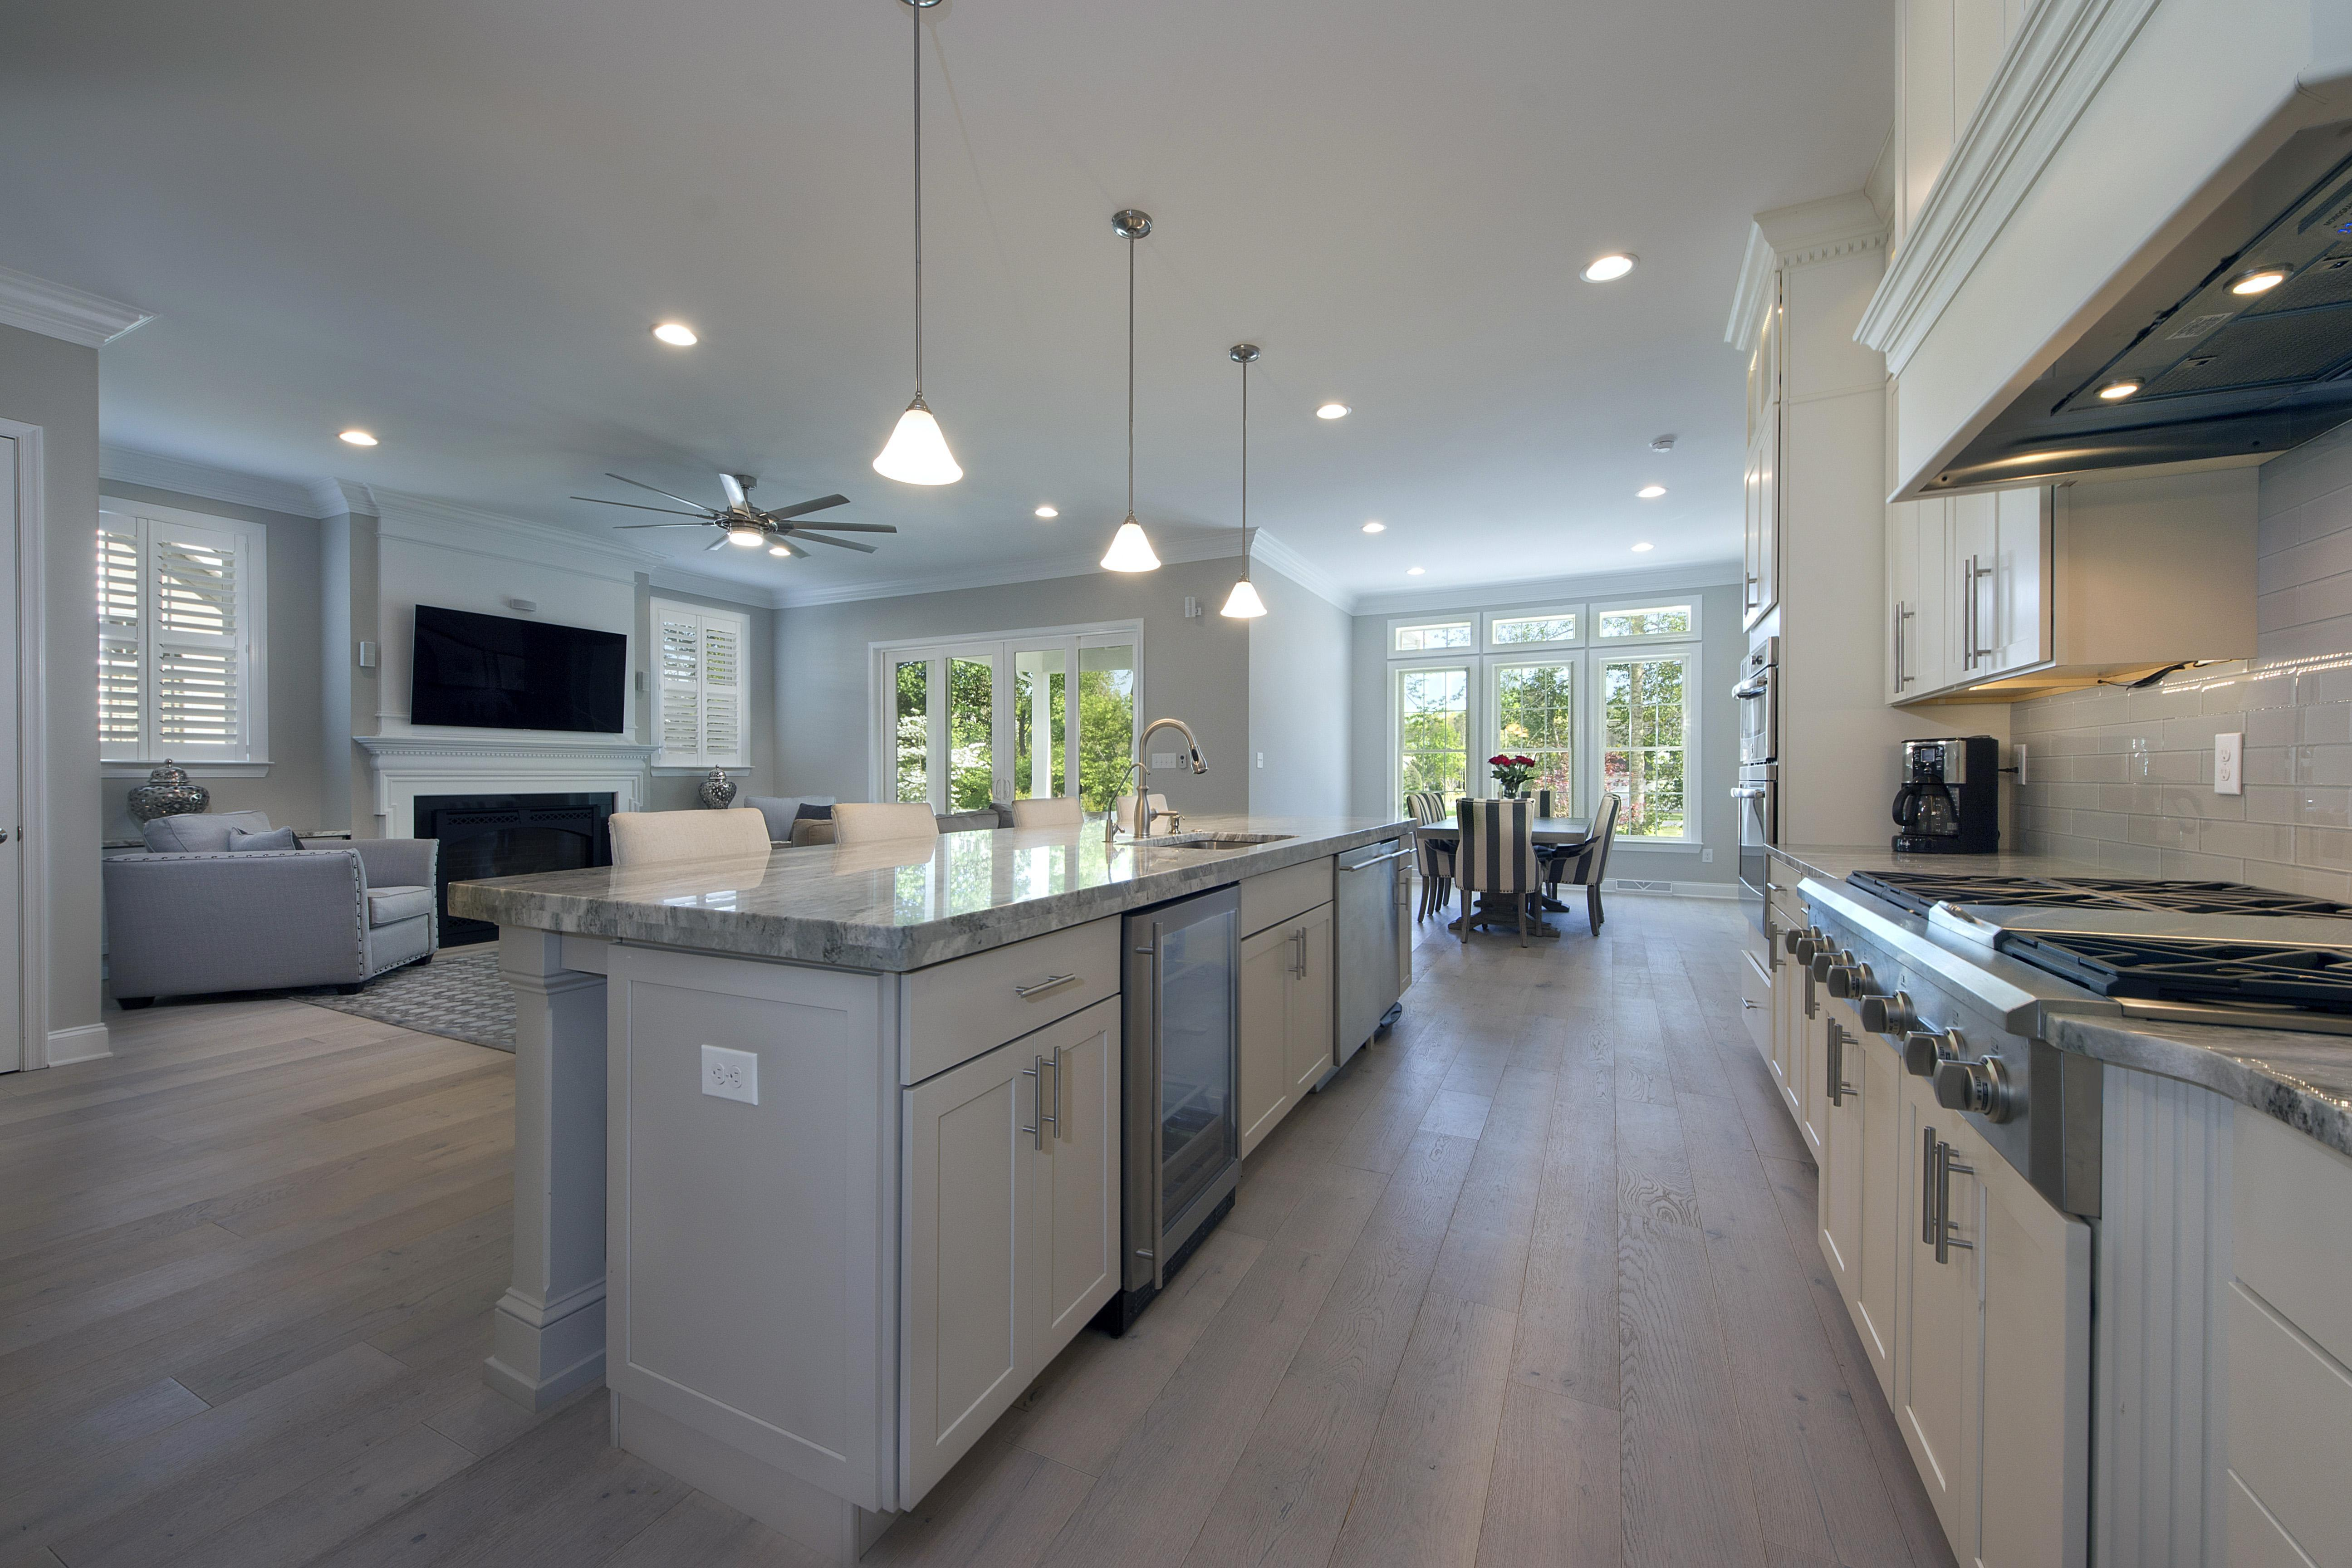 Kitchen featured in The Georgetown By Ashburn Homes in Sussex, DE